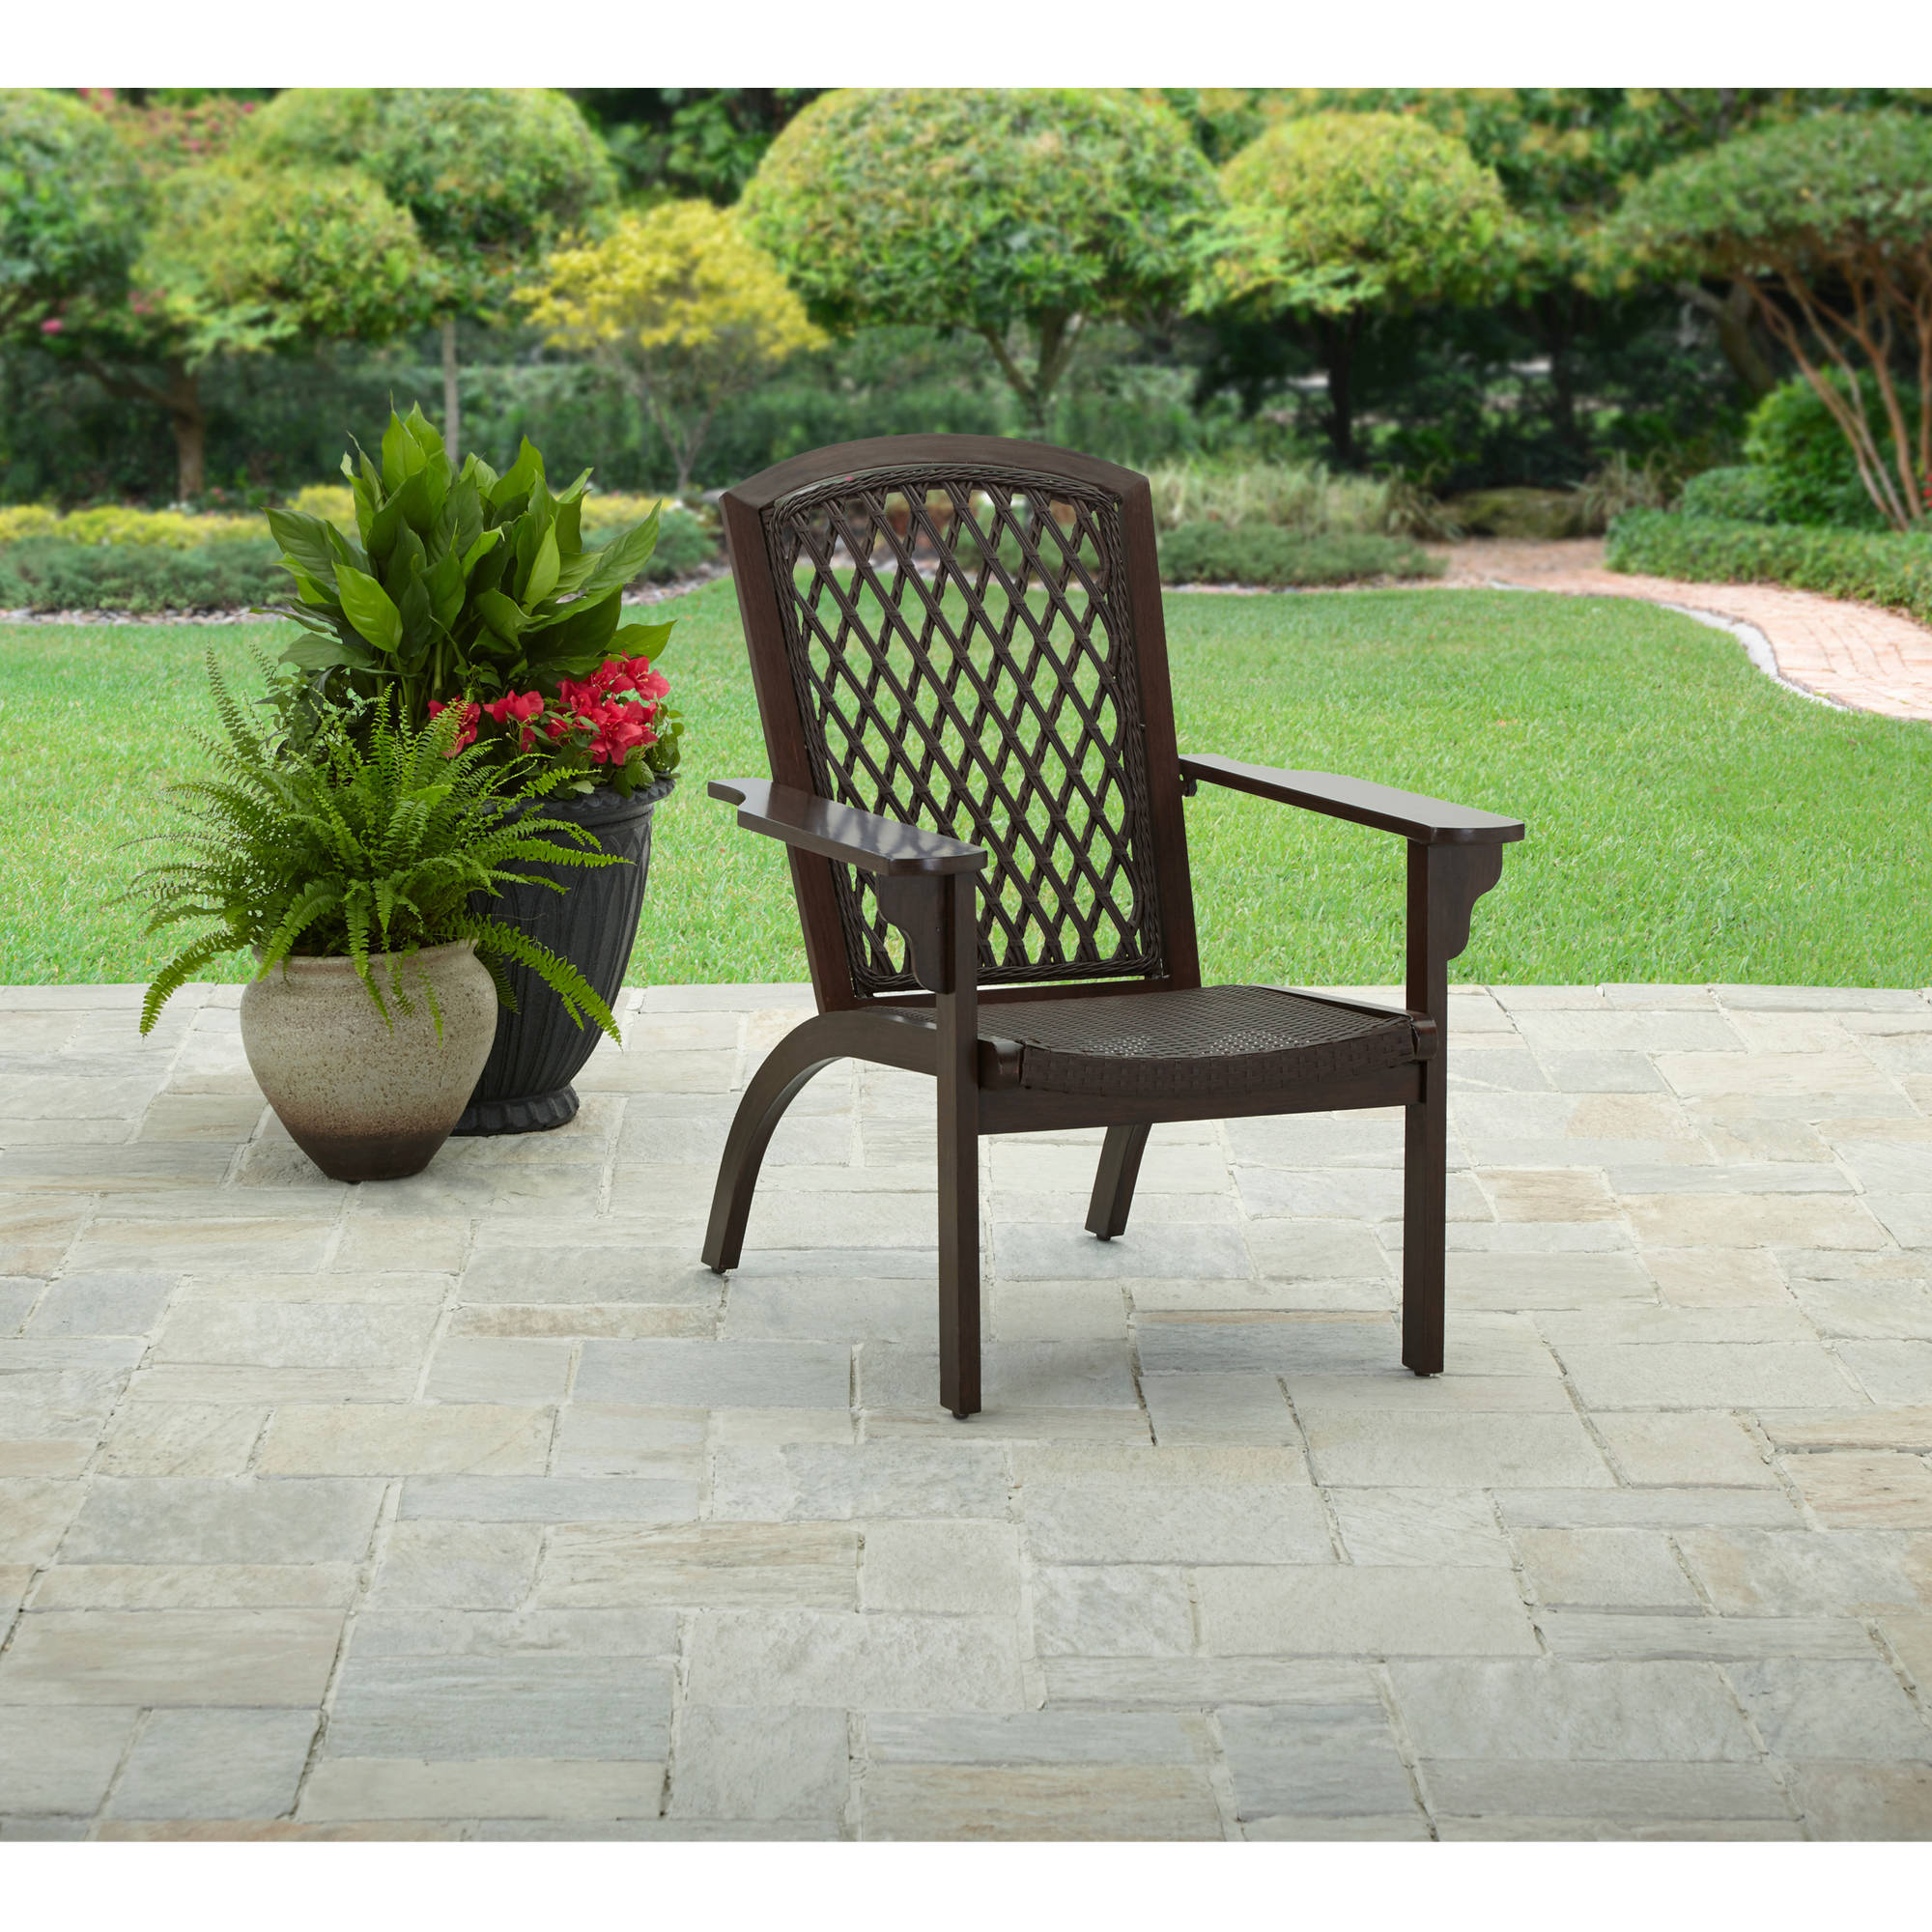 Better Homes And Gardens Legacy Place Aluminum Wicker Adirondack